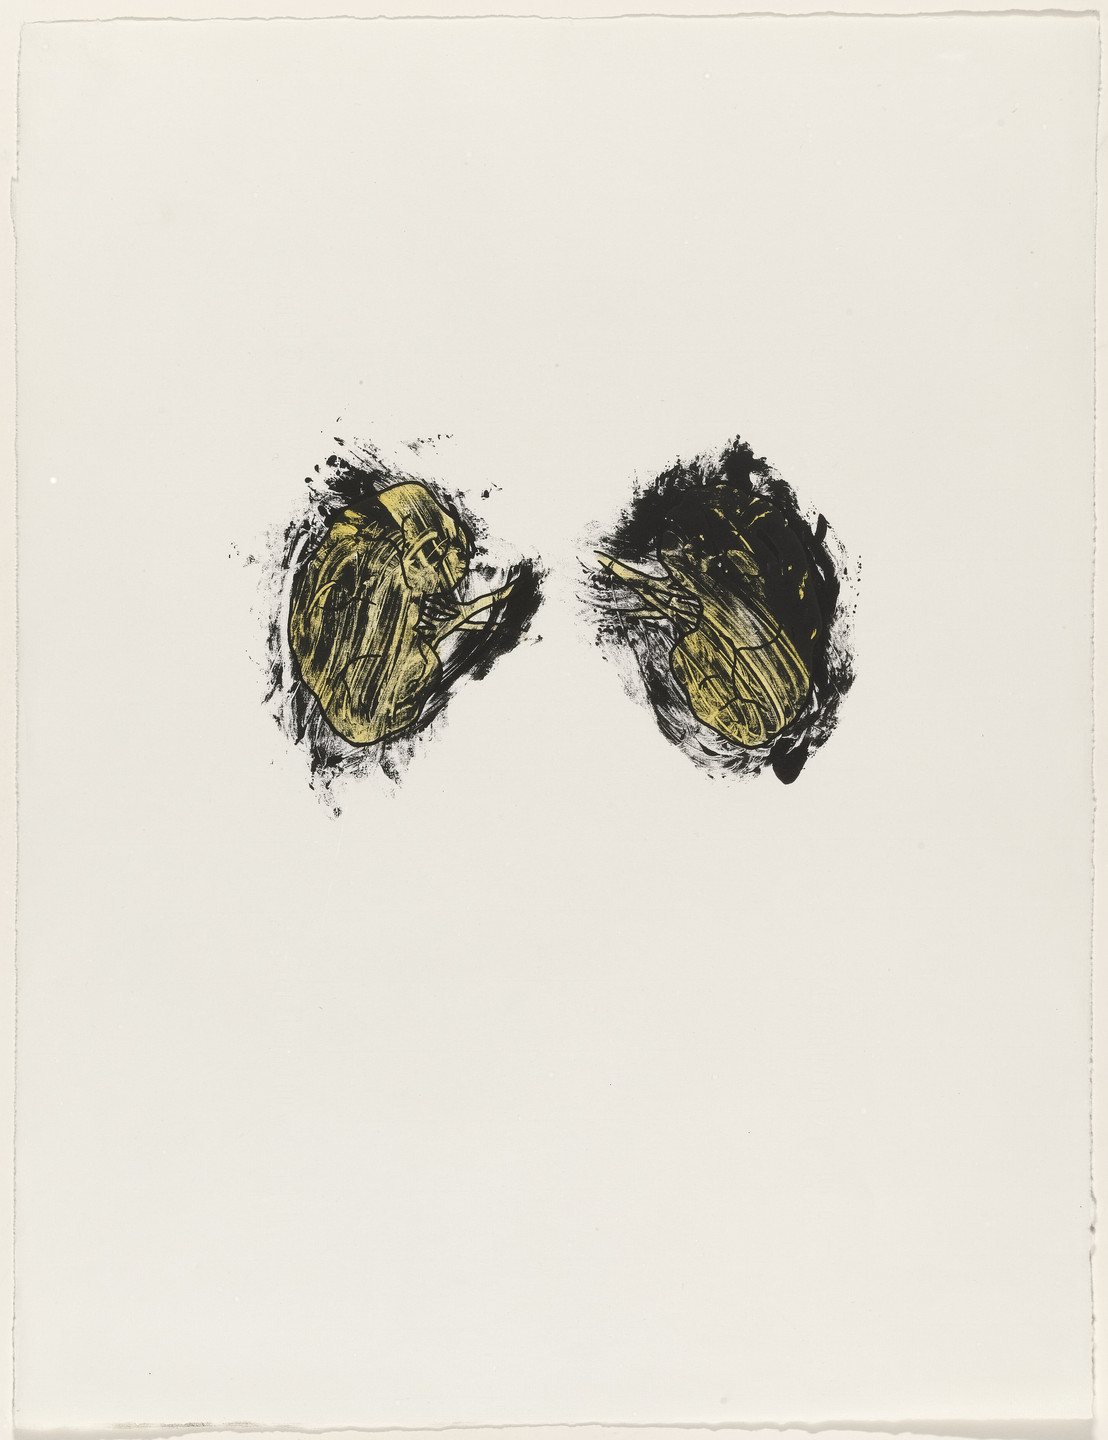 Kiki Smith. Kidneys from Possession Is Nine-Tenths of the Law. 1985